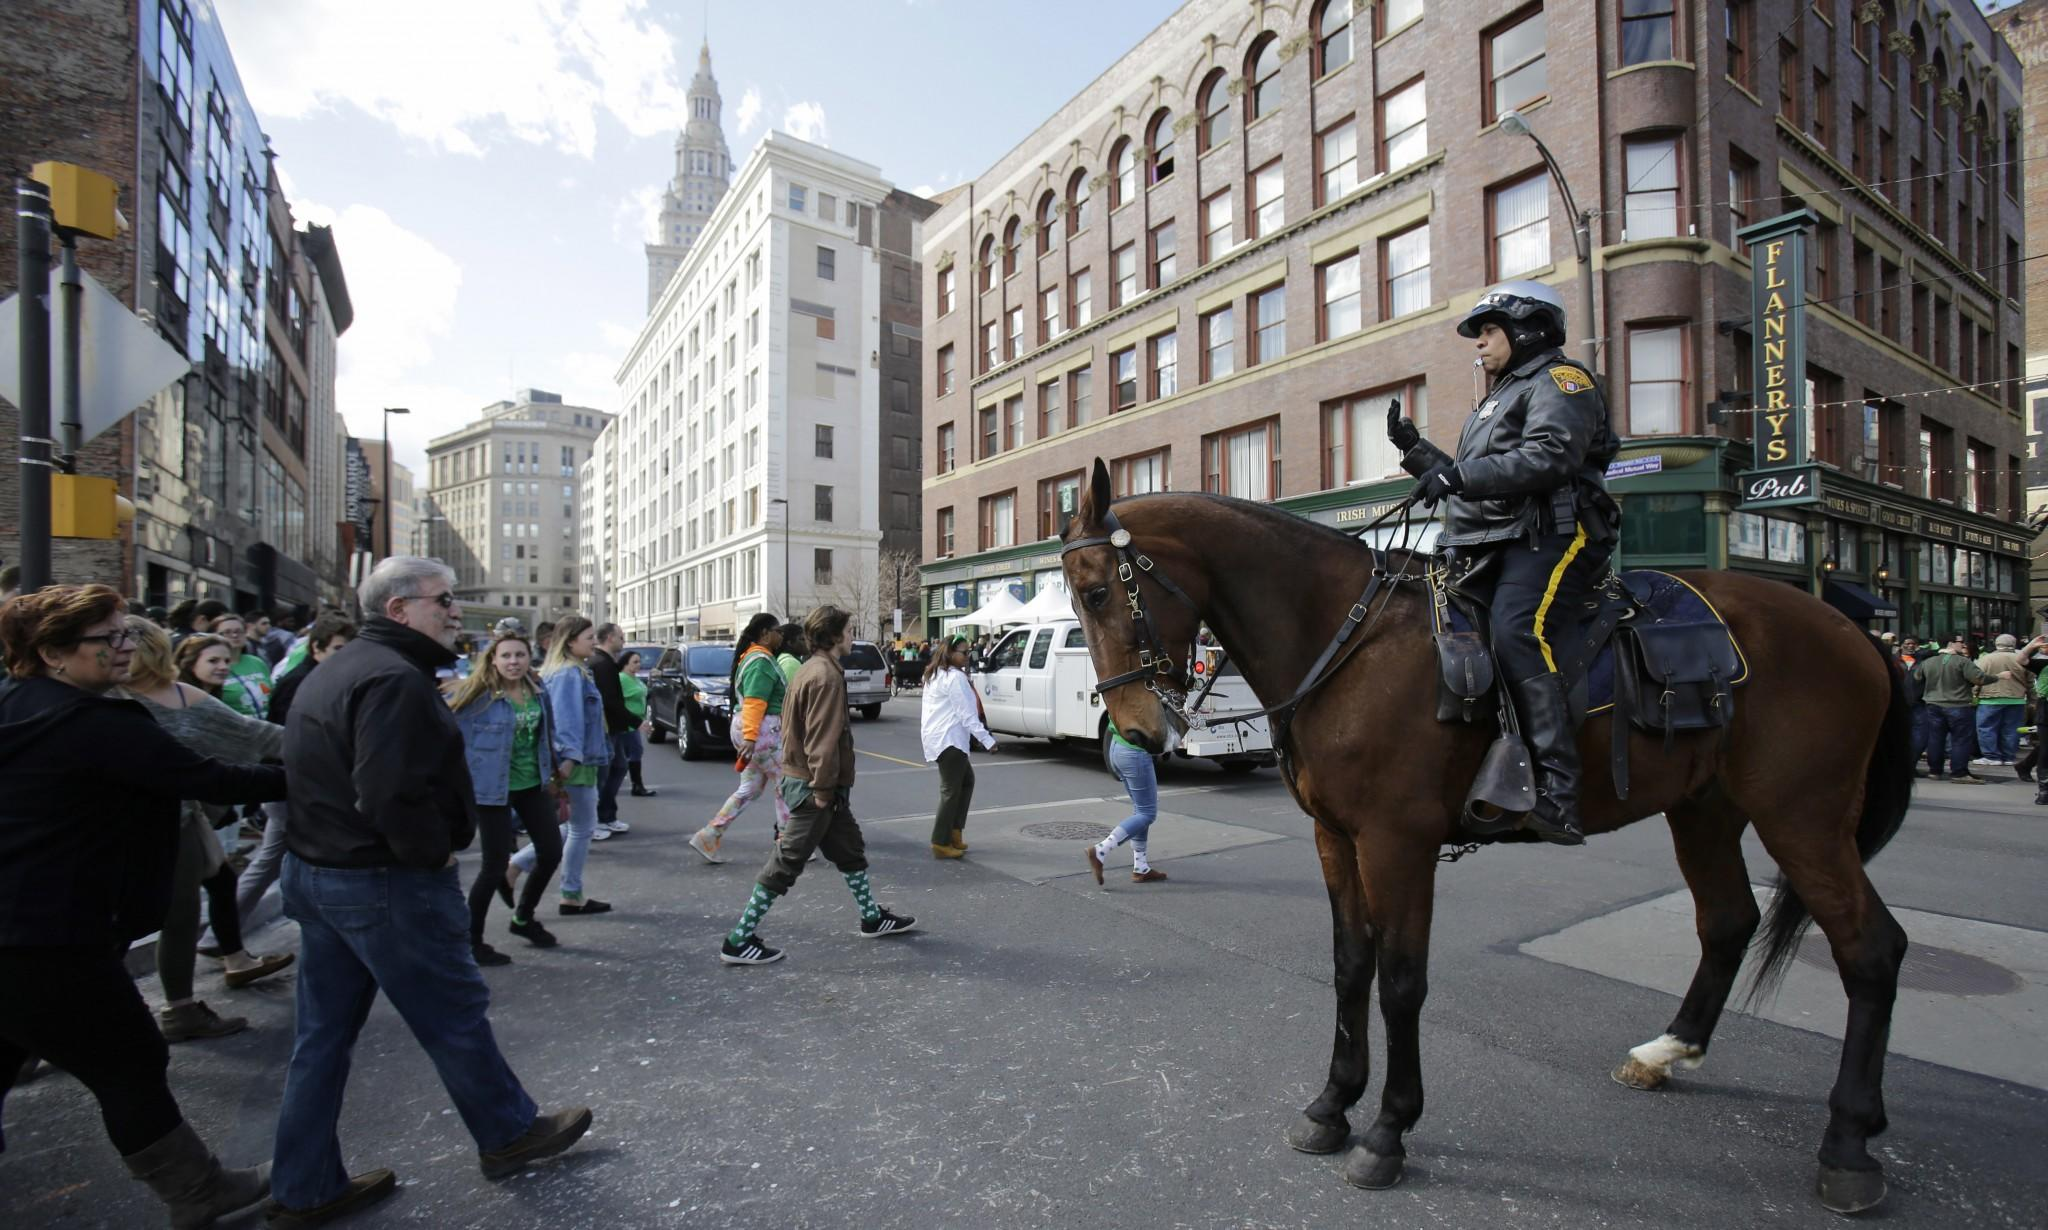 A Cleveland Police Mounted Unit patrolman directs pedestrians in downtown Cleveland on March 17, 2016. (Photo: Tony Dejak/AP)